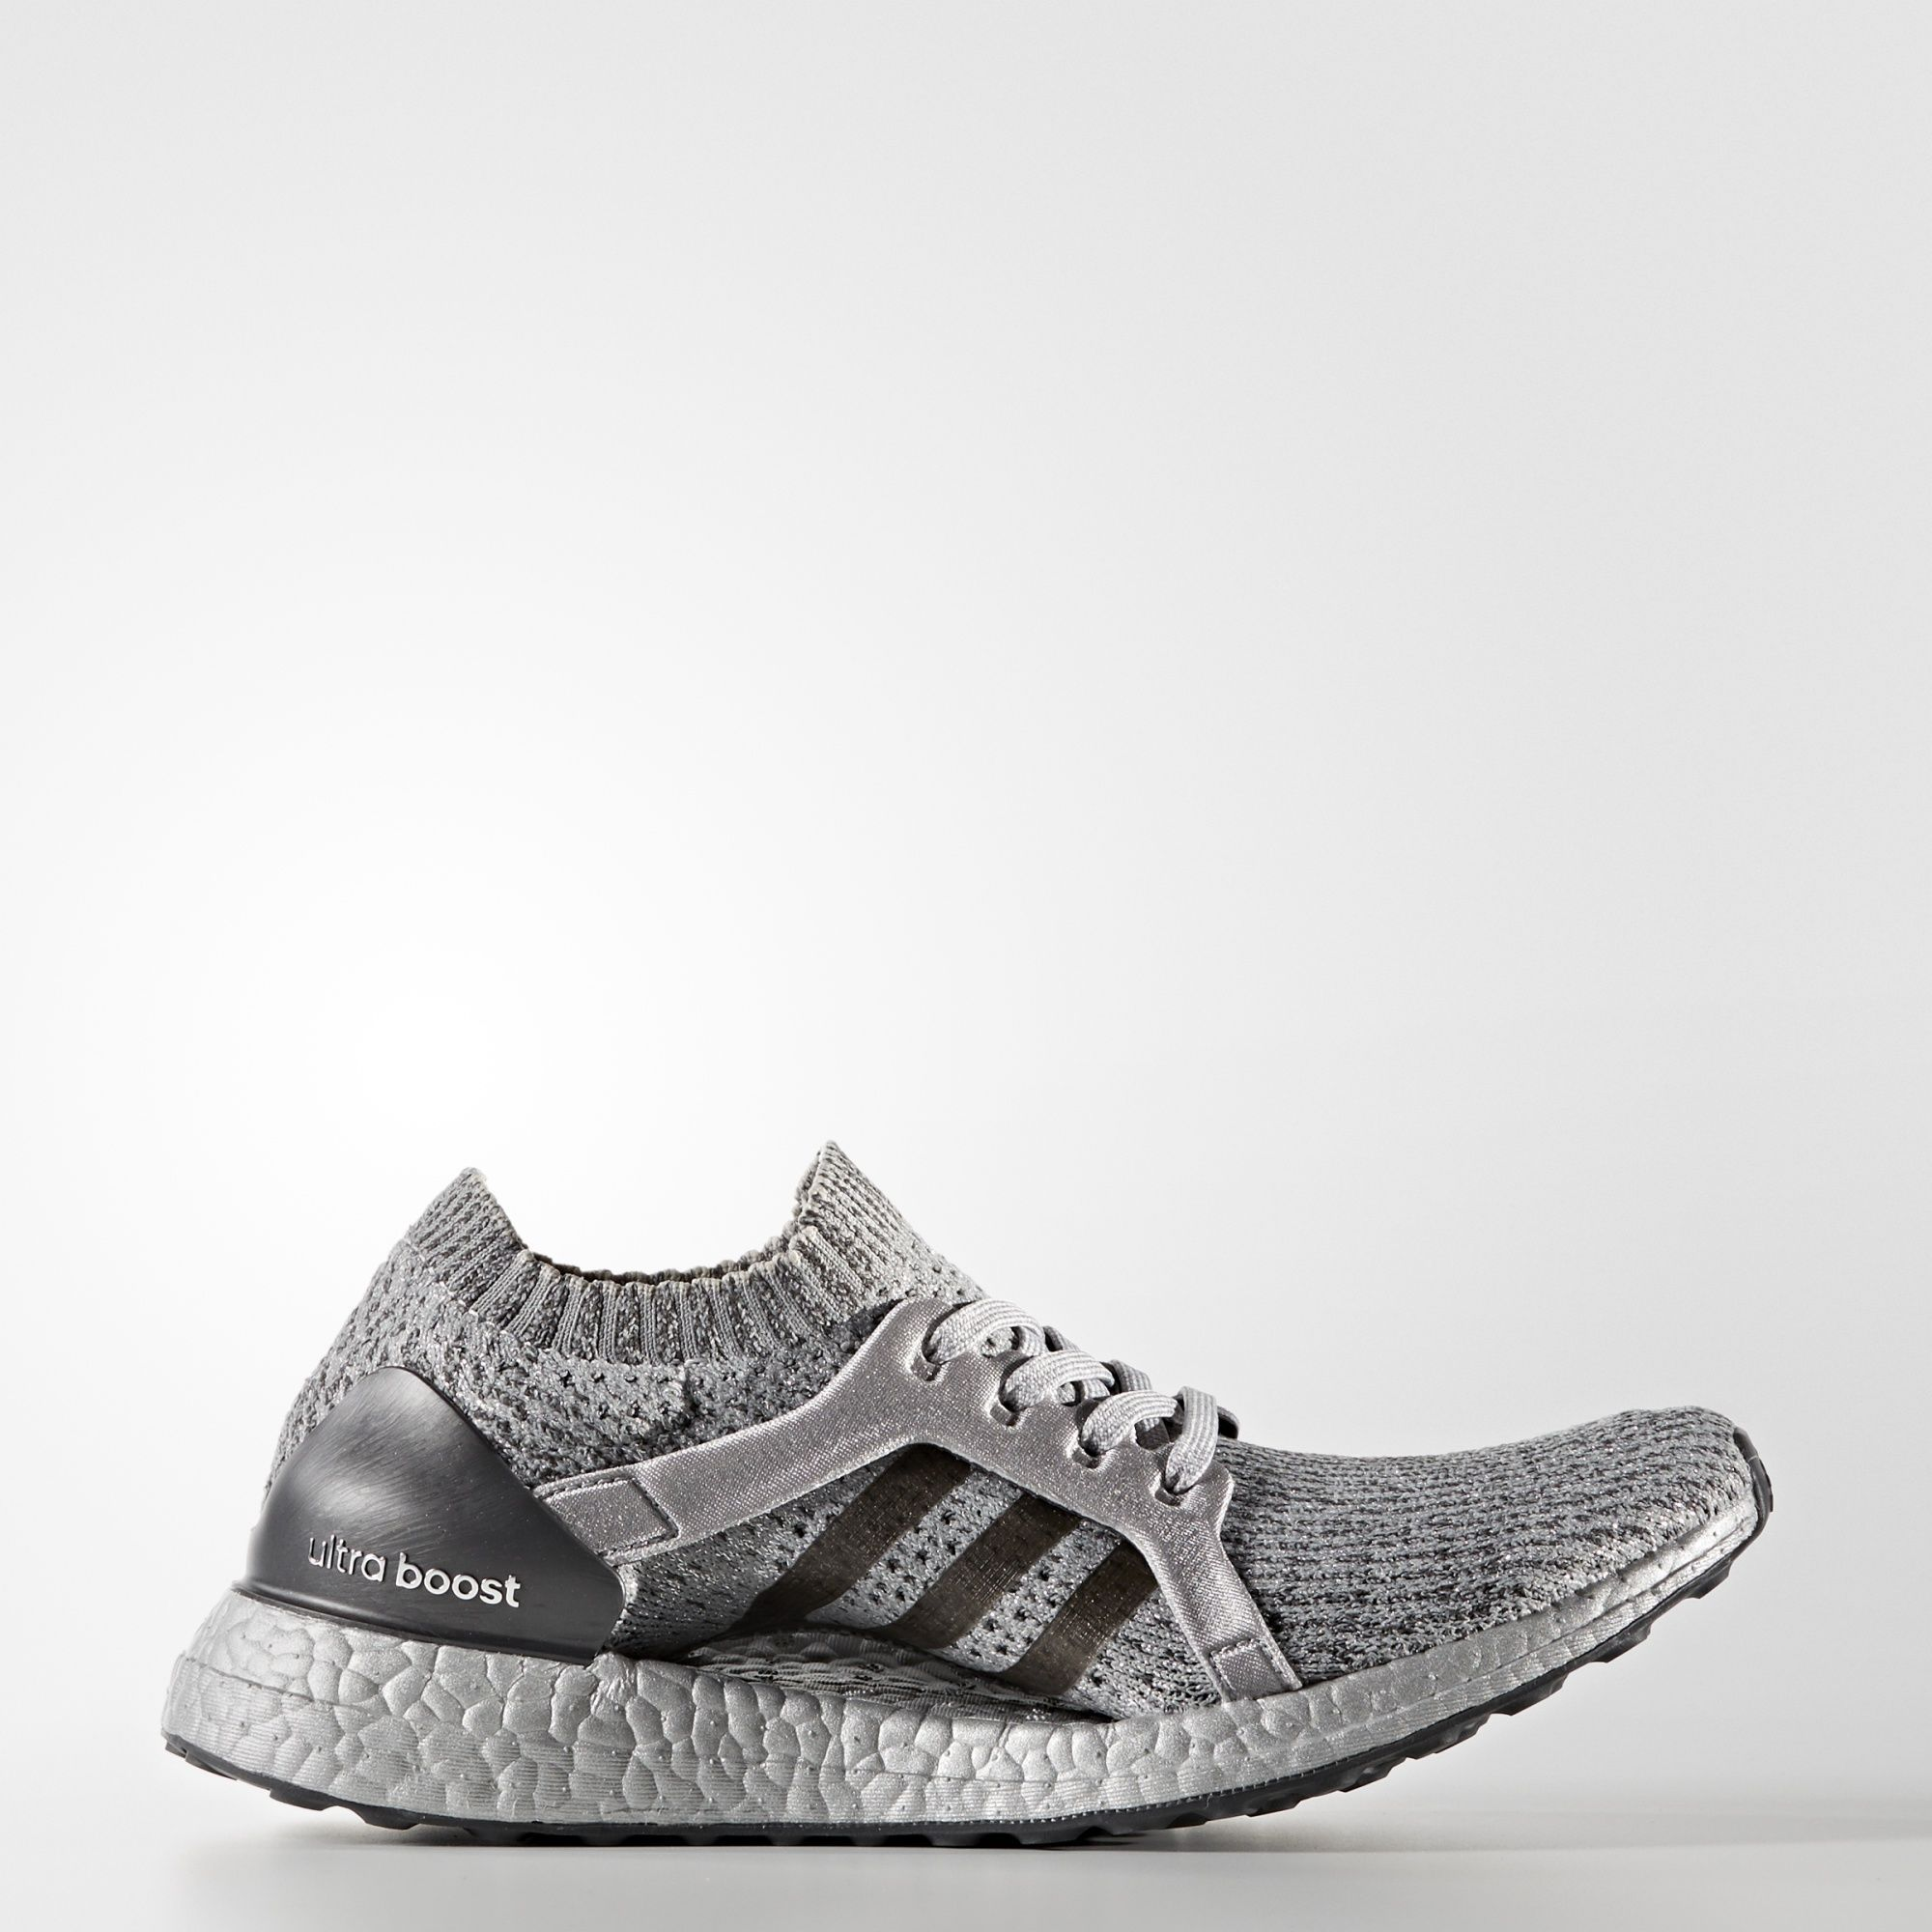 Parley X Shoes | adidas US. Workout ShoesActive WearRunning ShoesRunning  GearUltraboostWoman ...